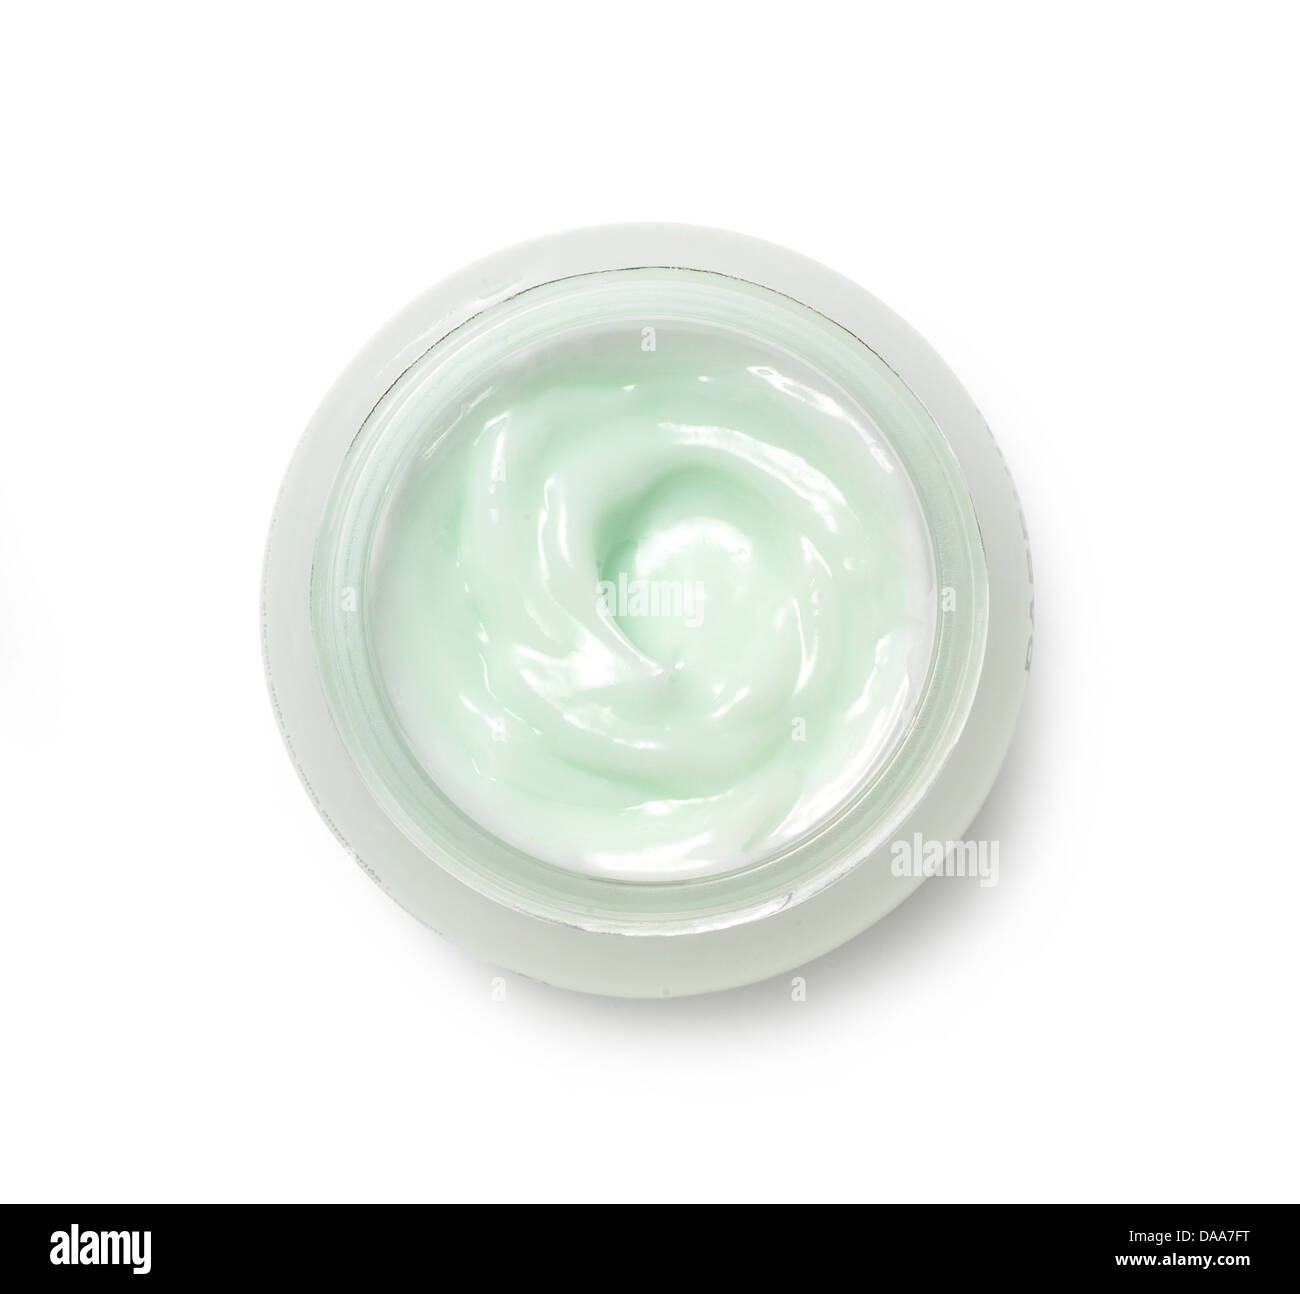 green/blue body face cream cut out onto a white background - Stock Image